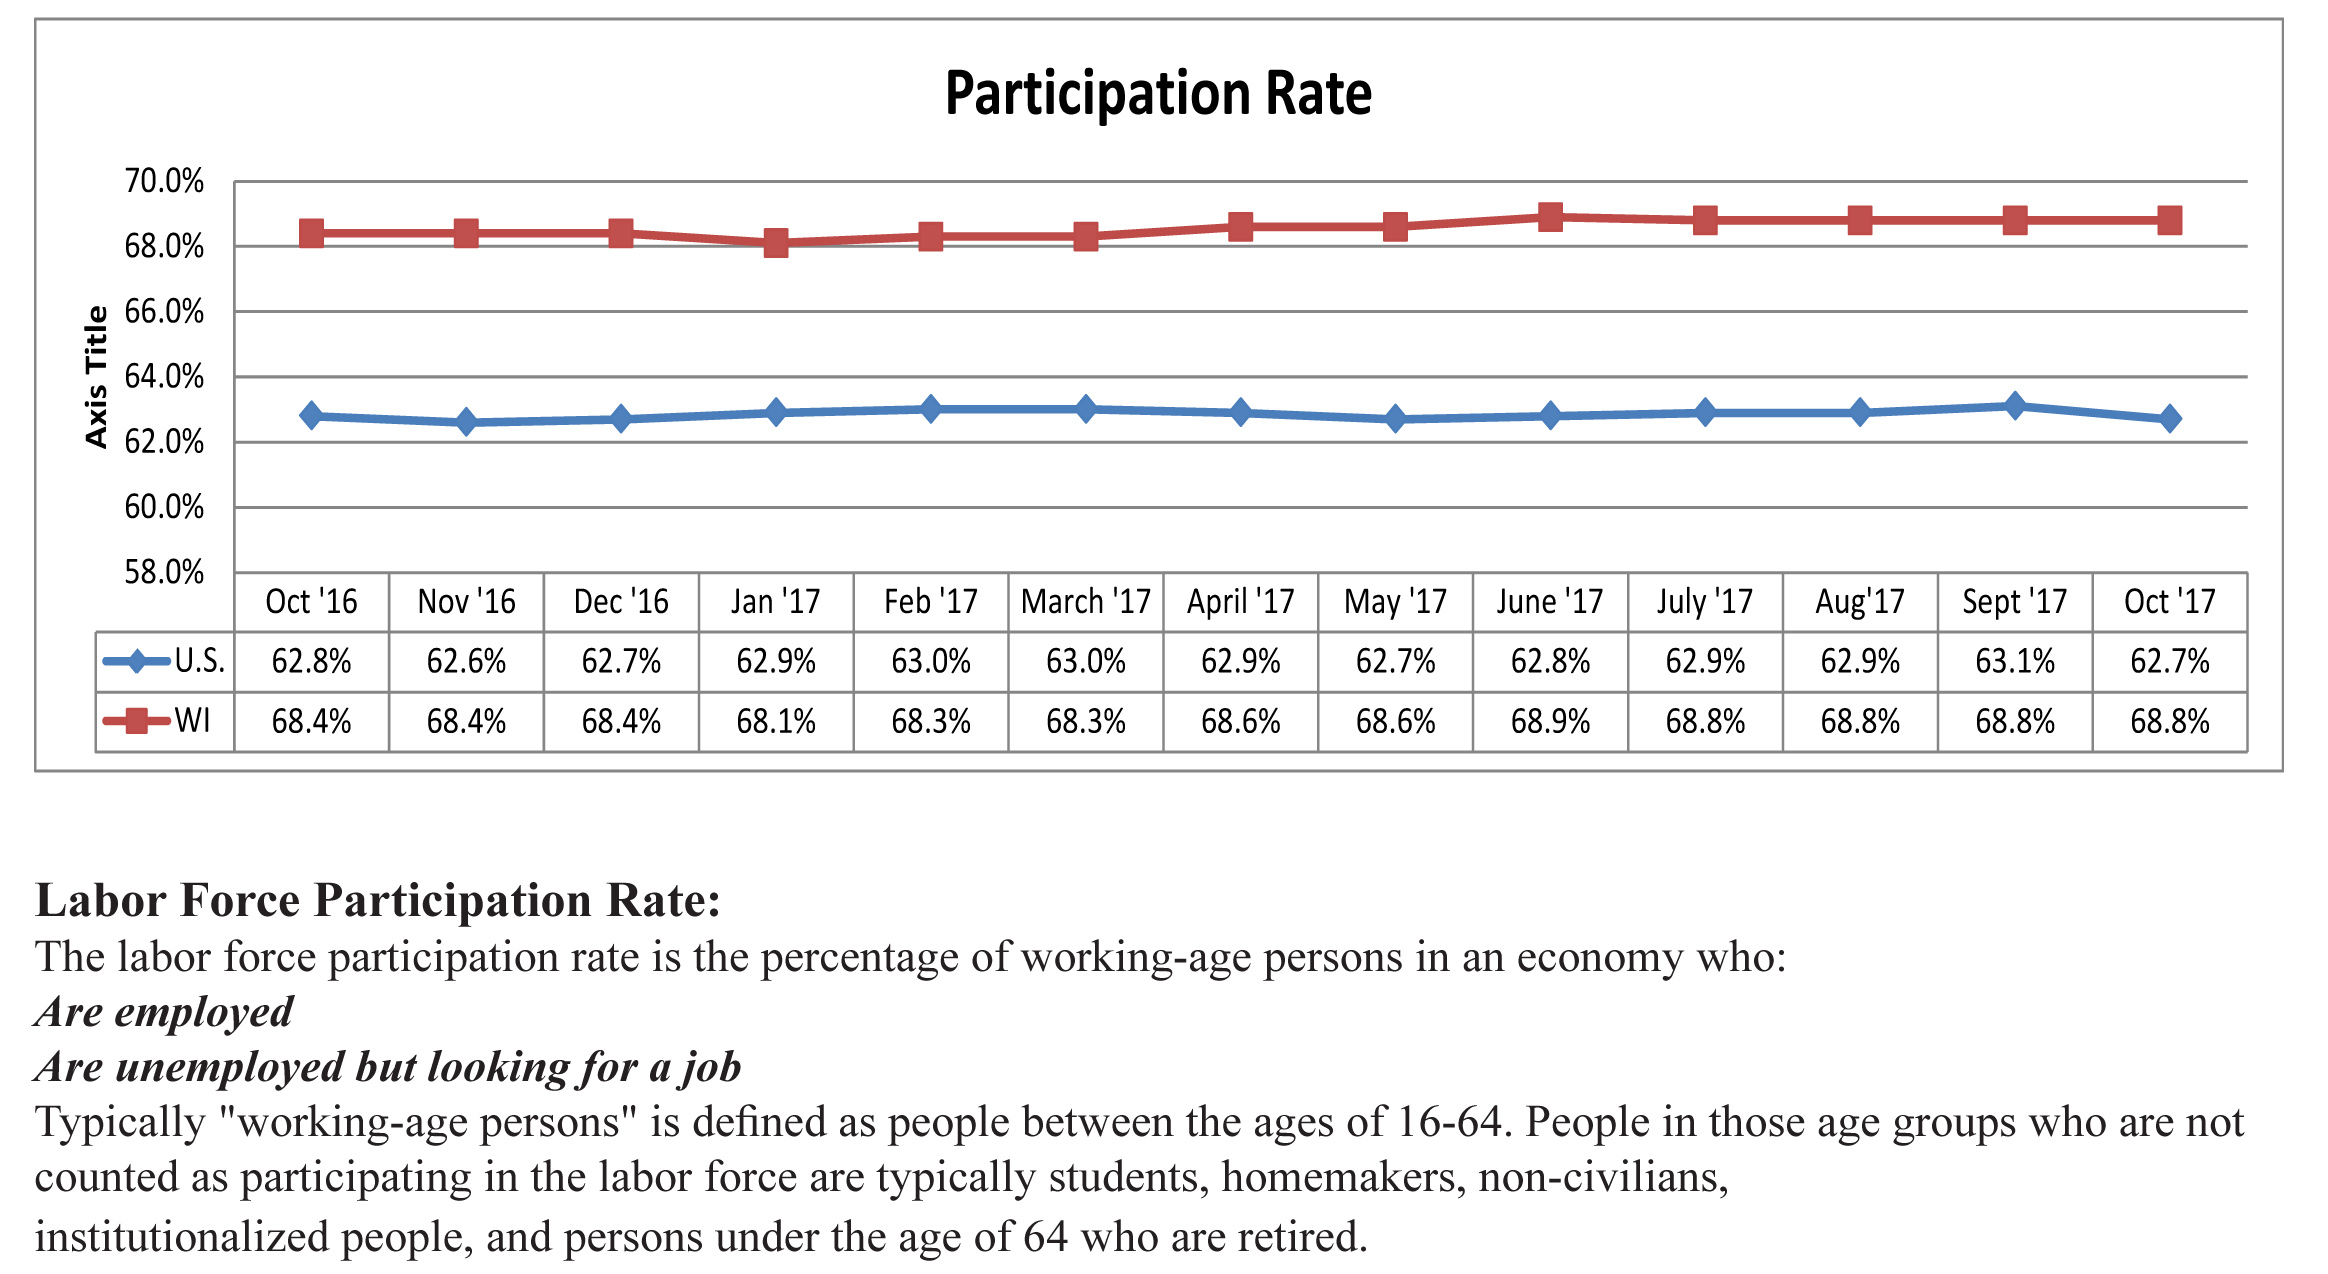 December 2017 Participation Rate